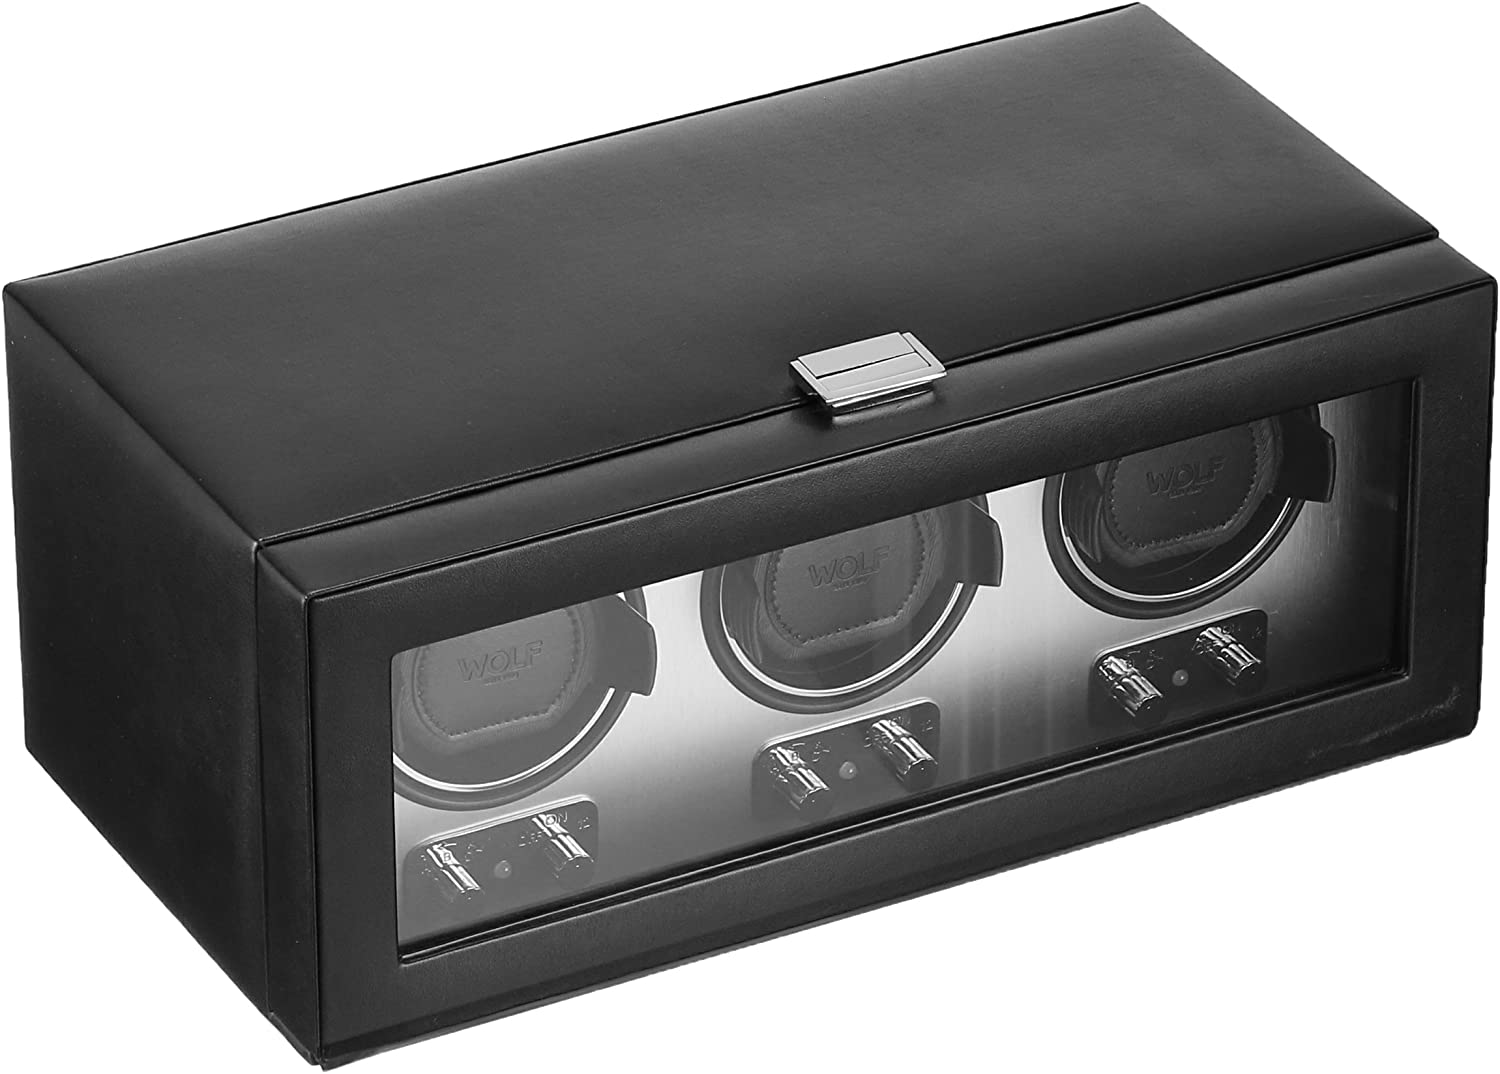 WOLF 270203 Heritage Triple Watch Winder with Cover, Brushed Metal